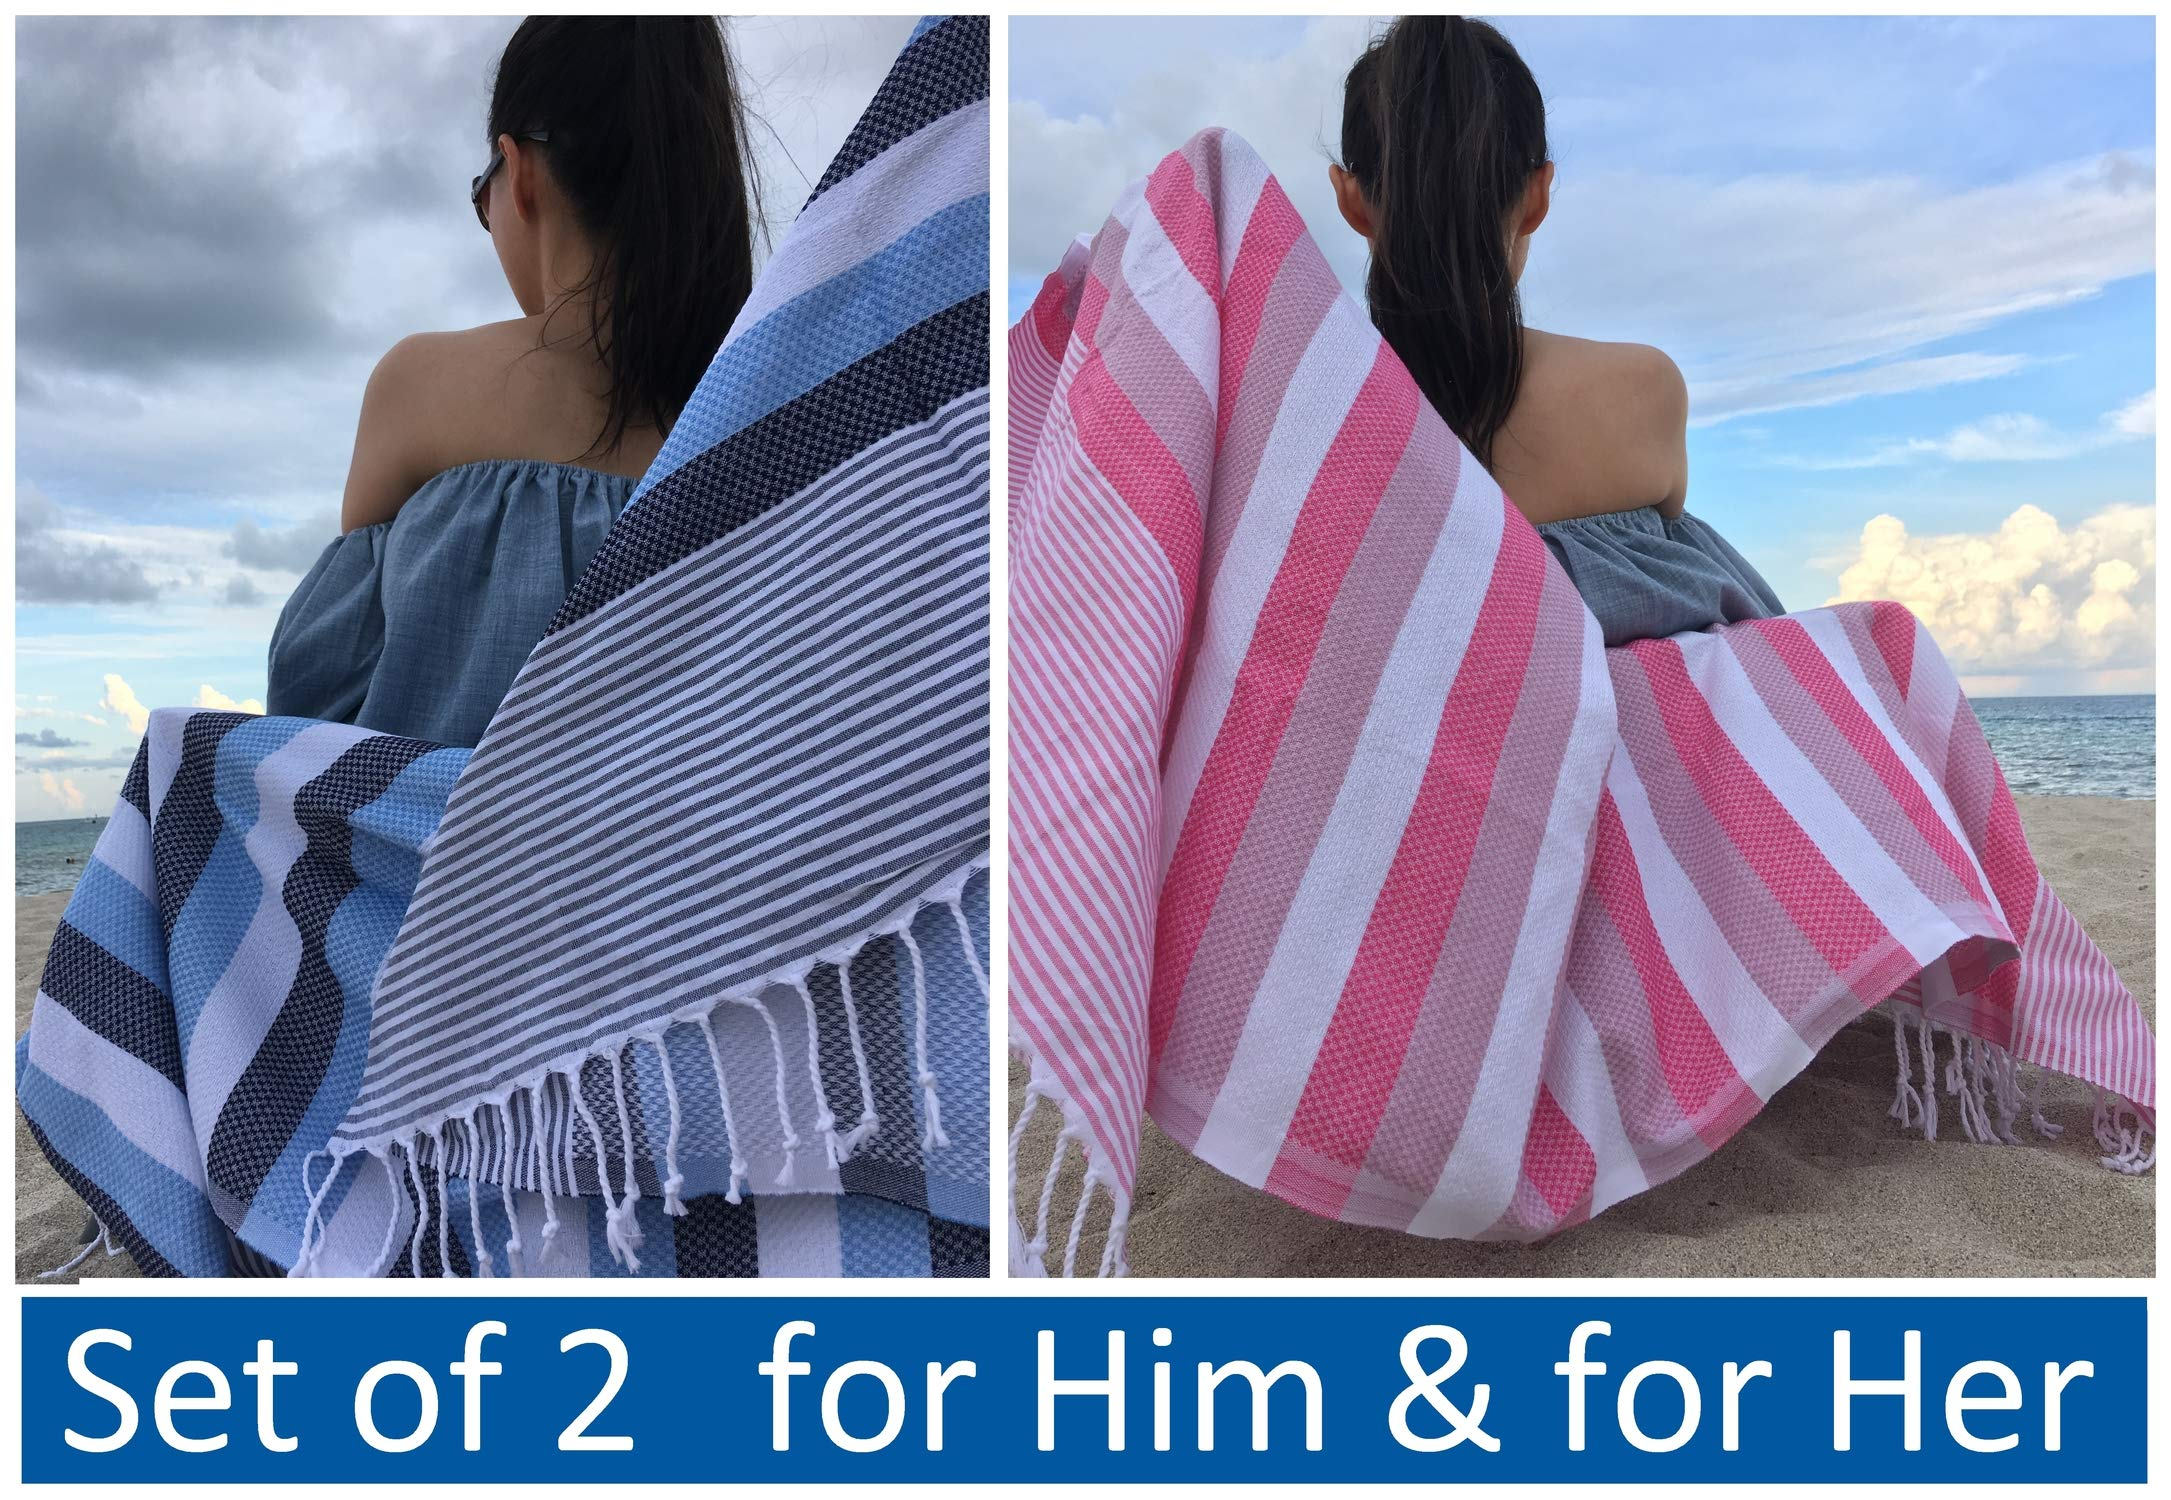 Lux Oversized 40x75 Very Absorbent Cotton Beach Towel W/Hidden Zipper Pocket 100% Natural Turkish Cotton XL - Sand Free Lightweight Quick Dry | Poolside Sunbed Throw Boys Girls (Aqua Blue+Sugar Pink)